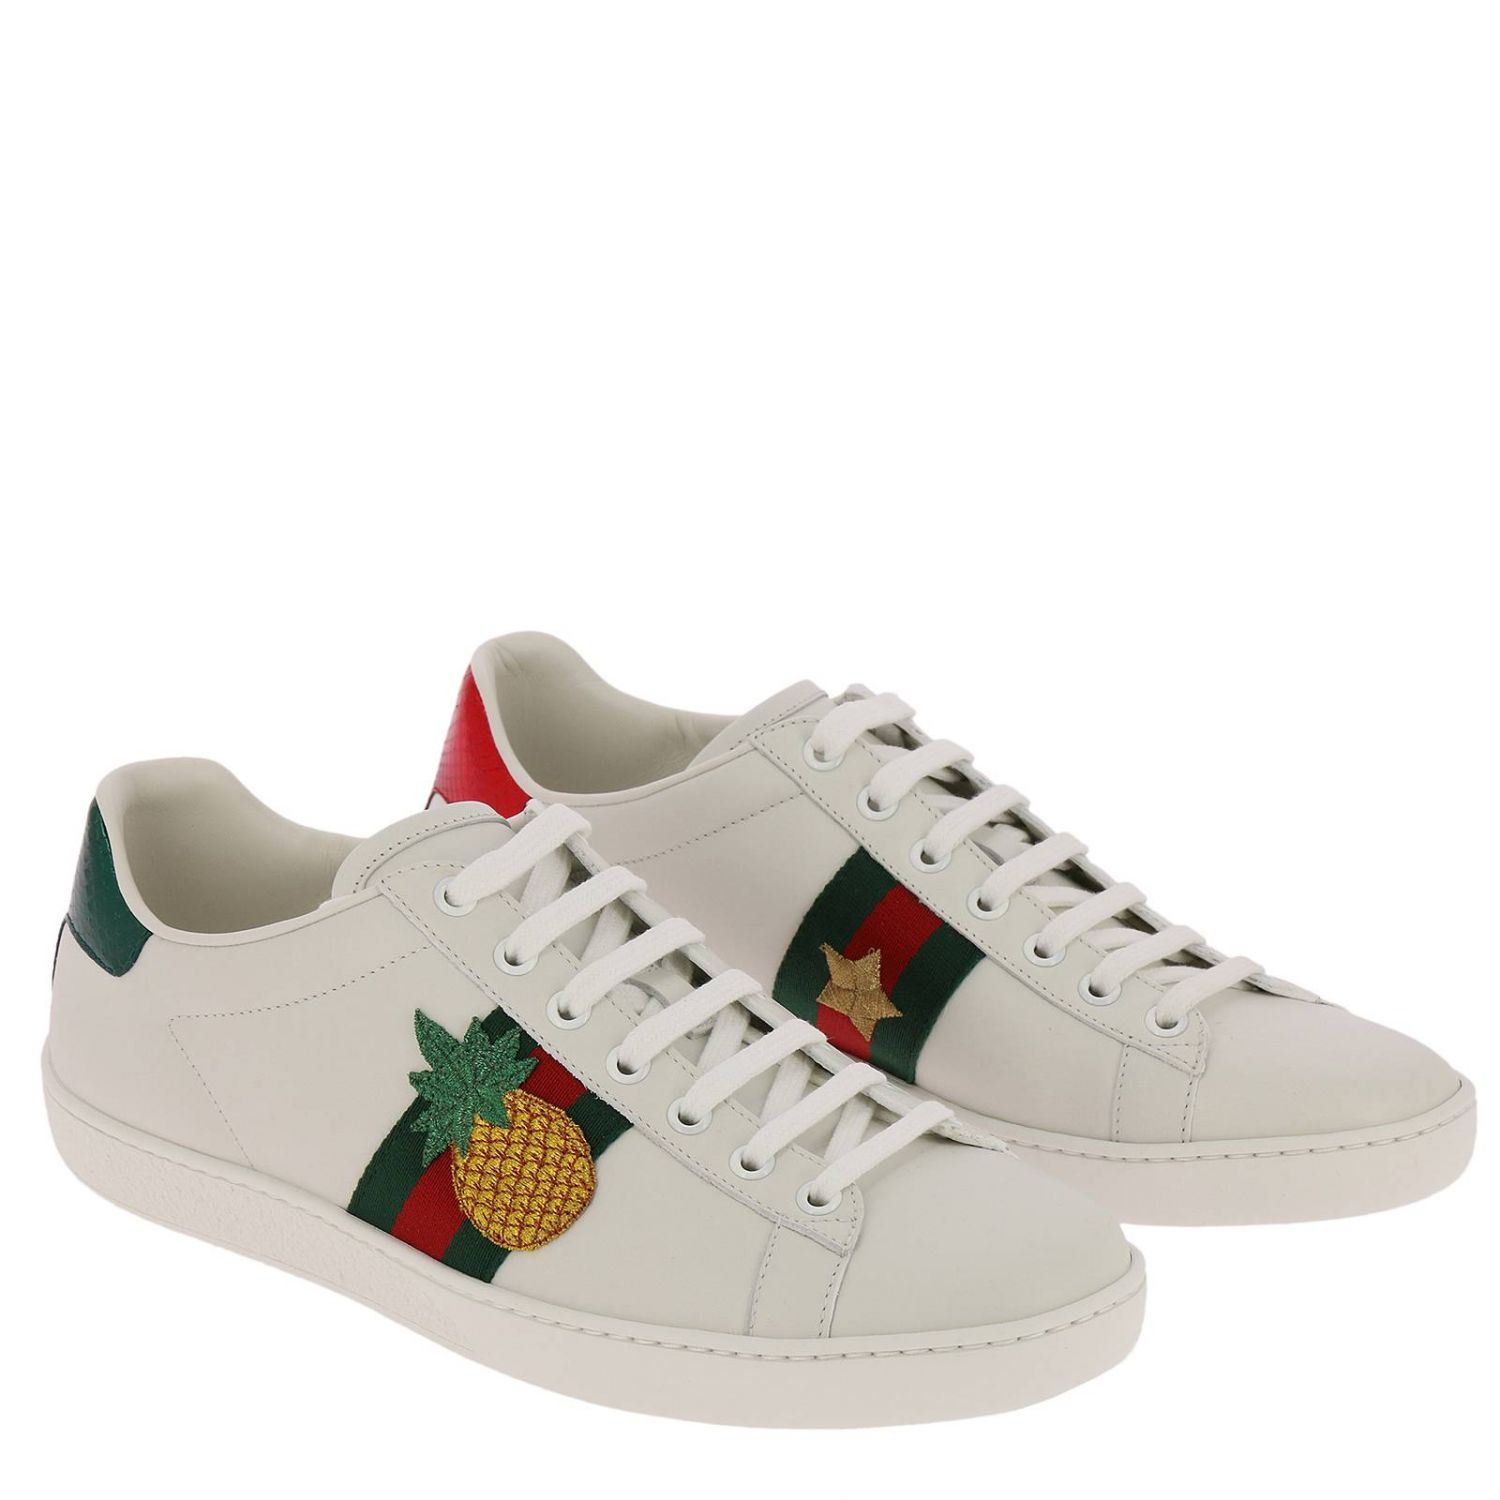 Shoes Gucci 431920 A38G0 Giglio EN